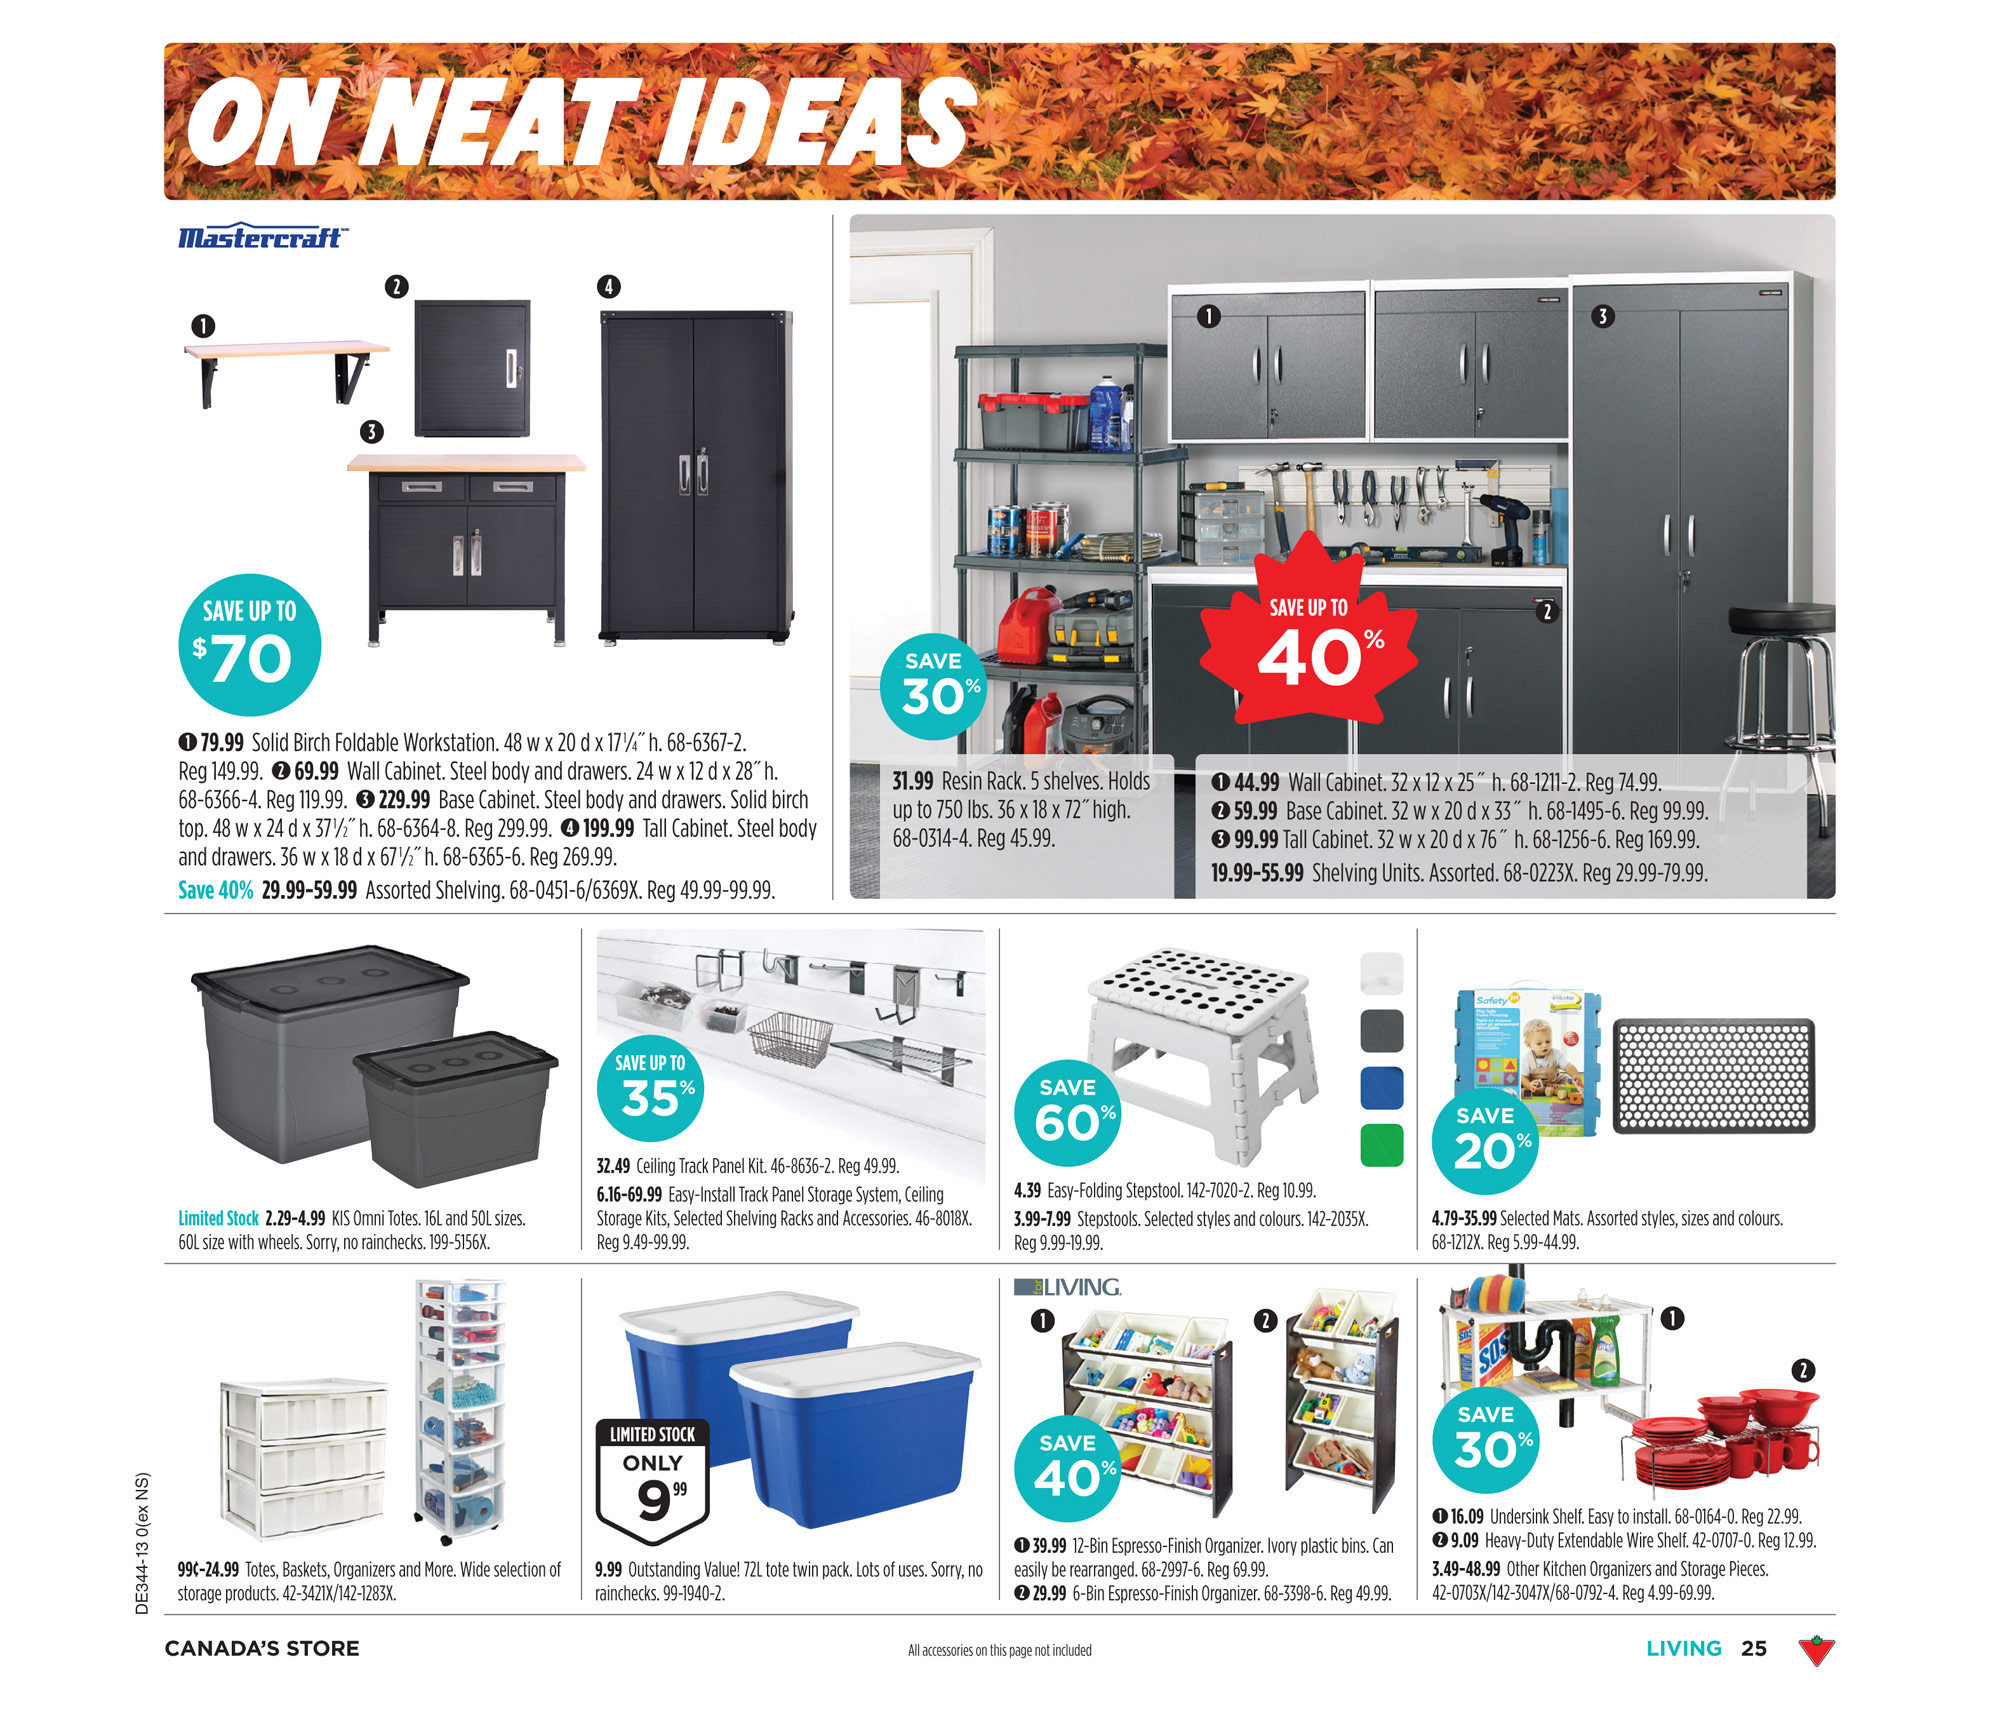 Canadian Tire Weekly Flyer Oct 24 31 3d Origami Swan Diagram Ii By Bunna X3